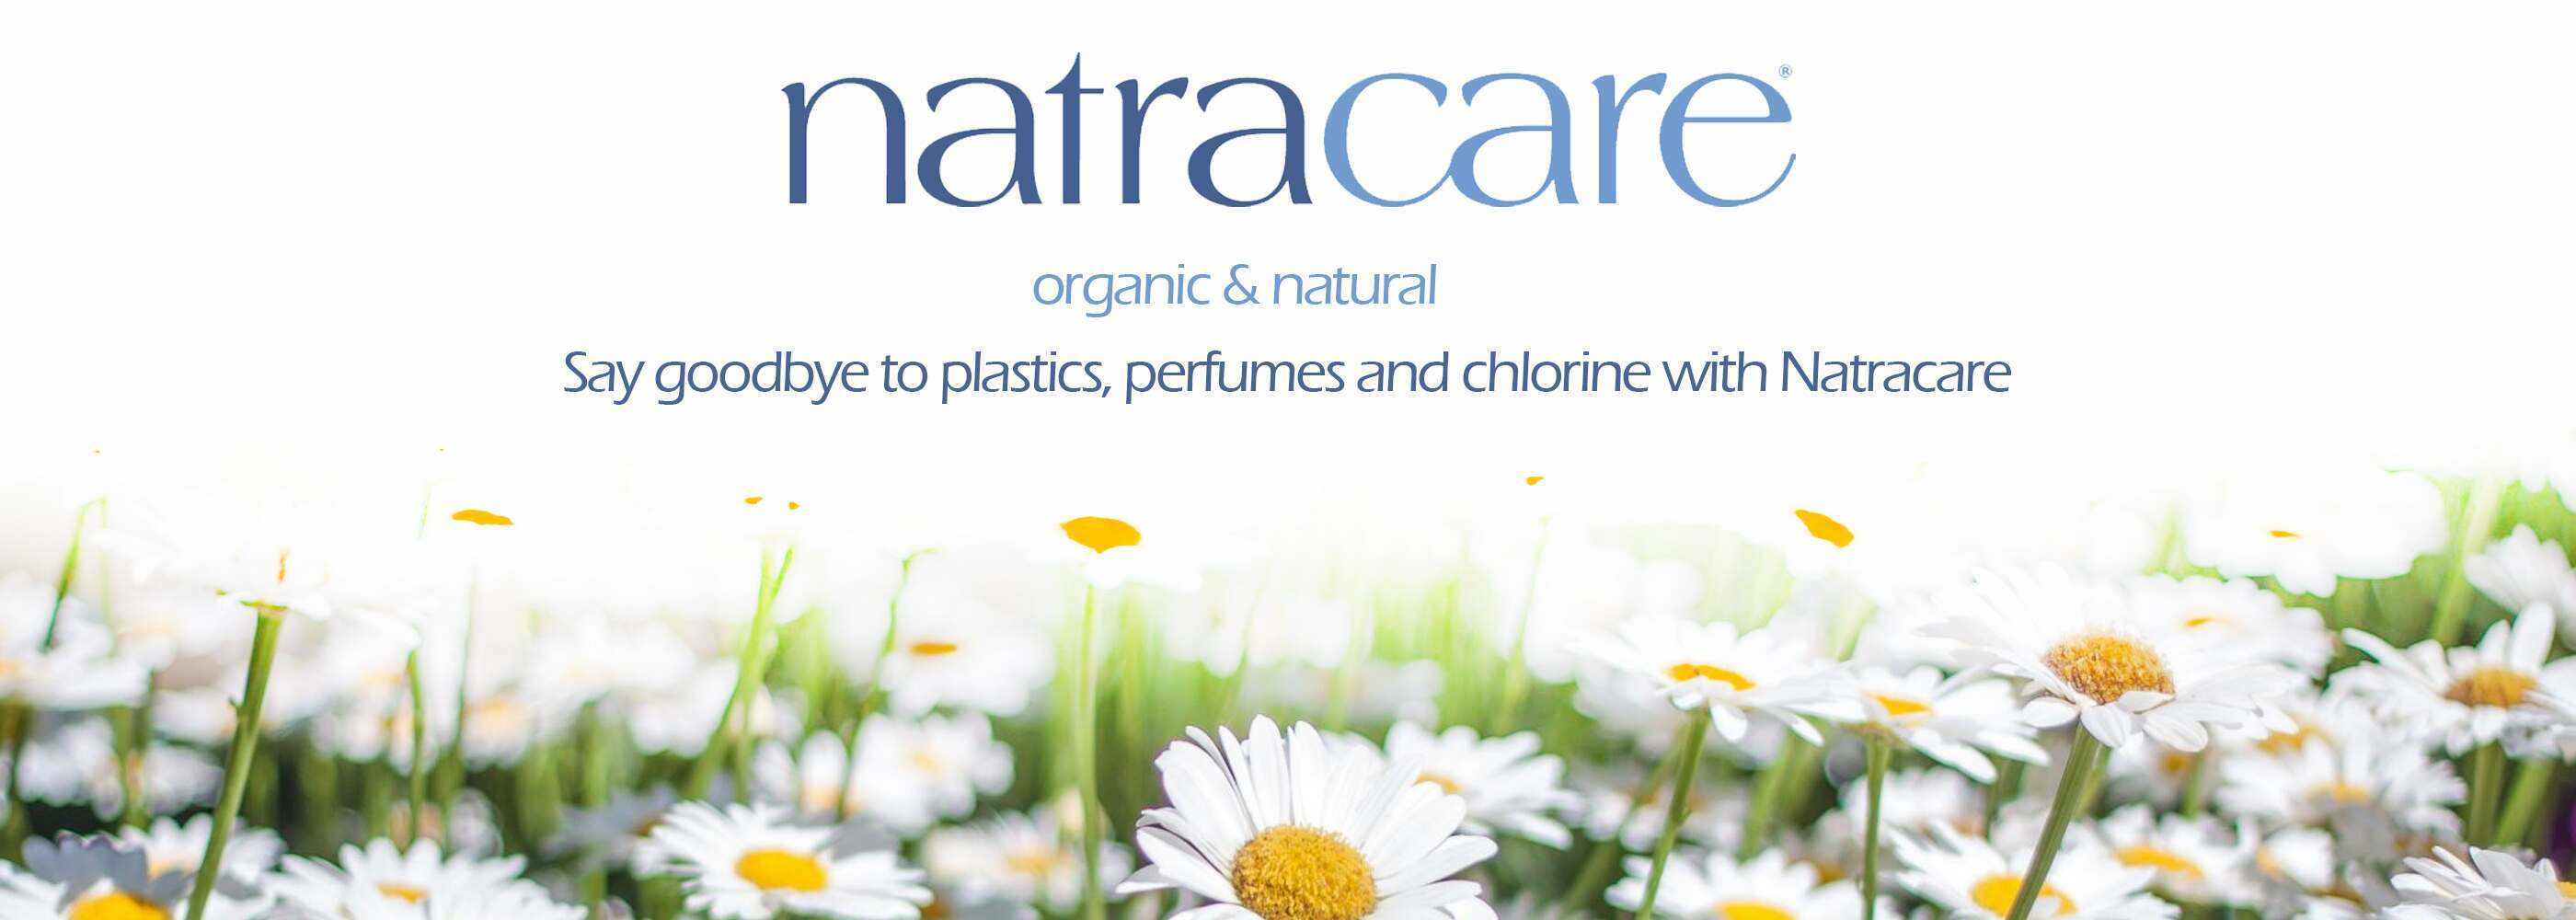 Natracare Organic and Natural